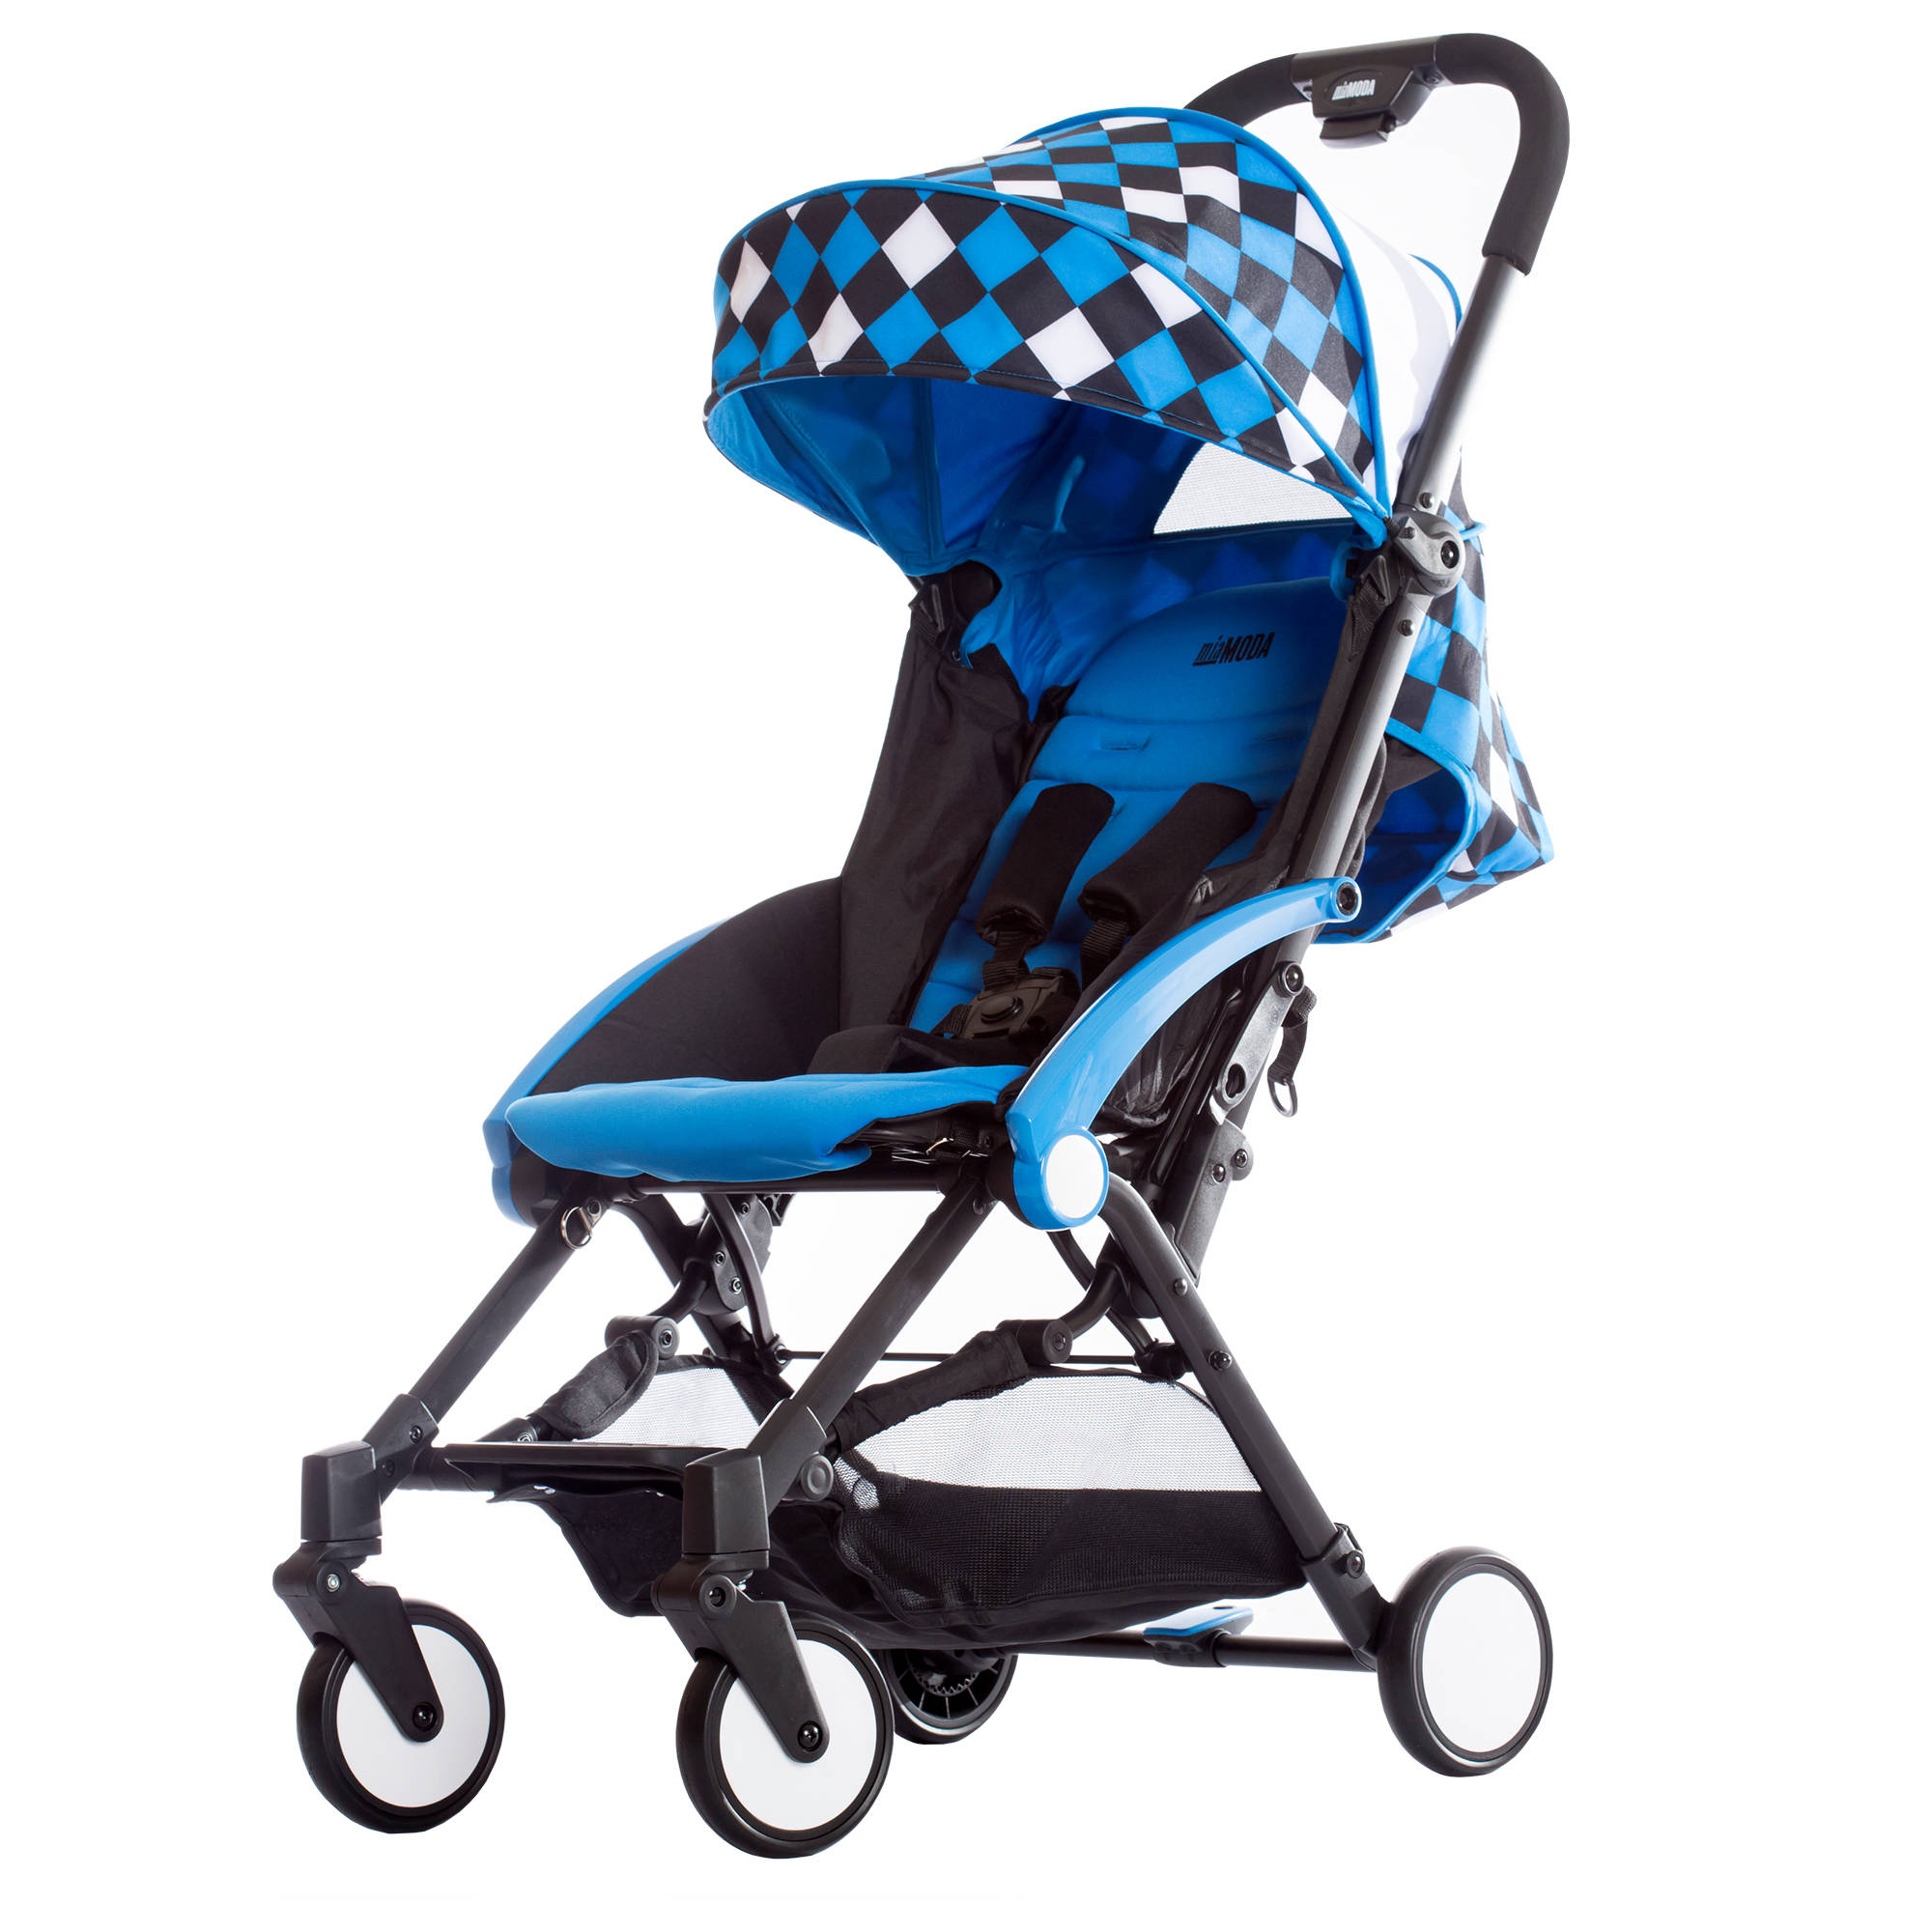 mia moda high chair pink folding patio chairs canadian tire lightweight strollers walmart com product image enzo stroller